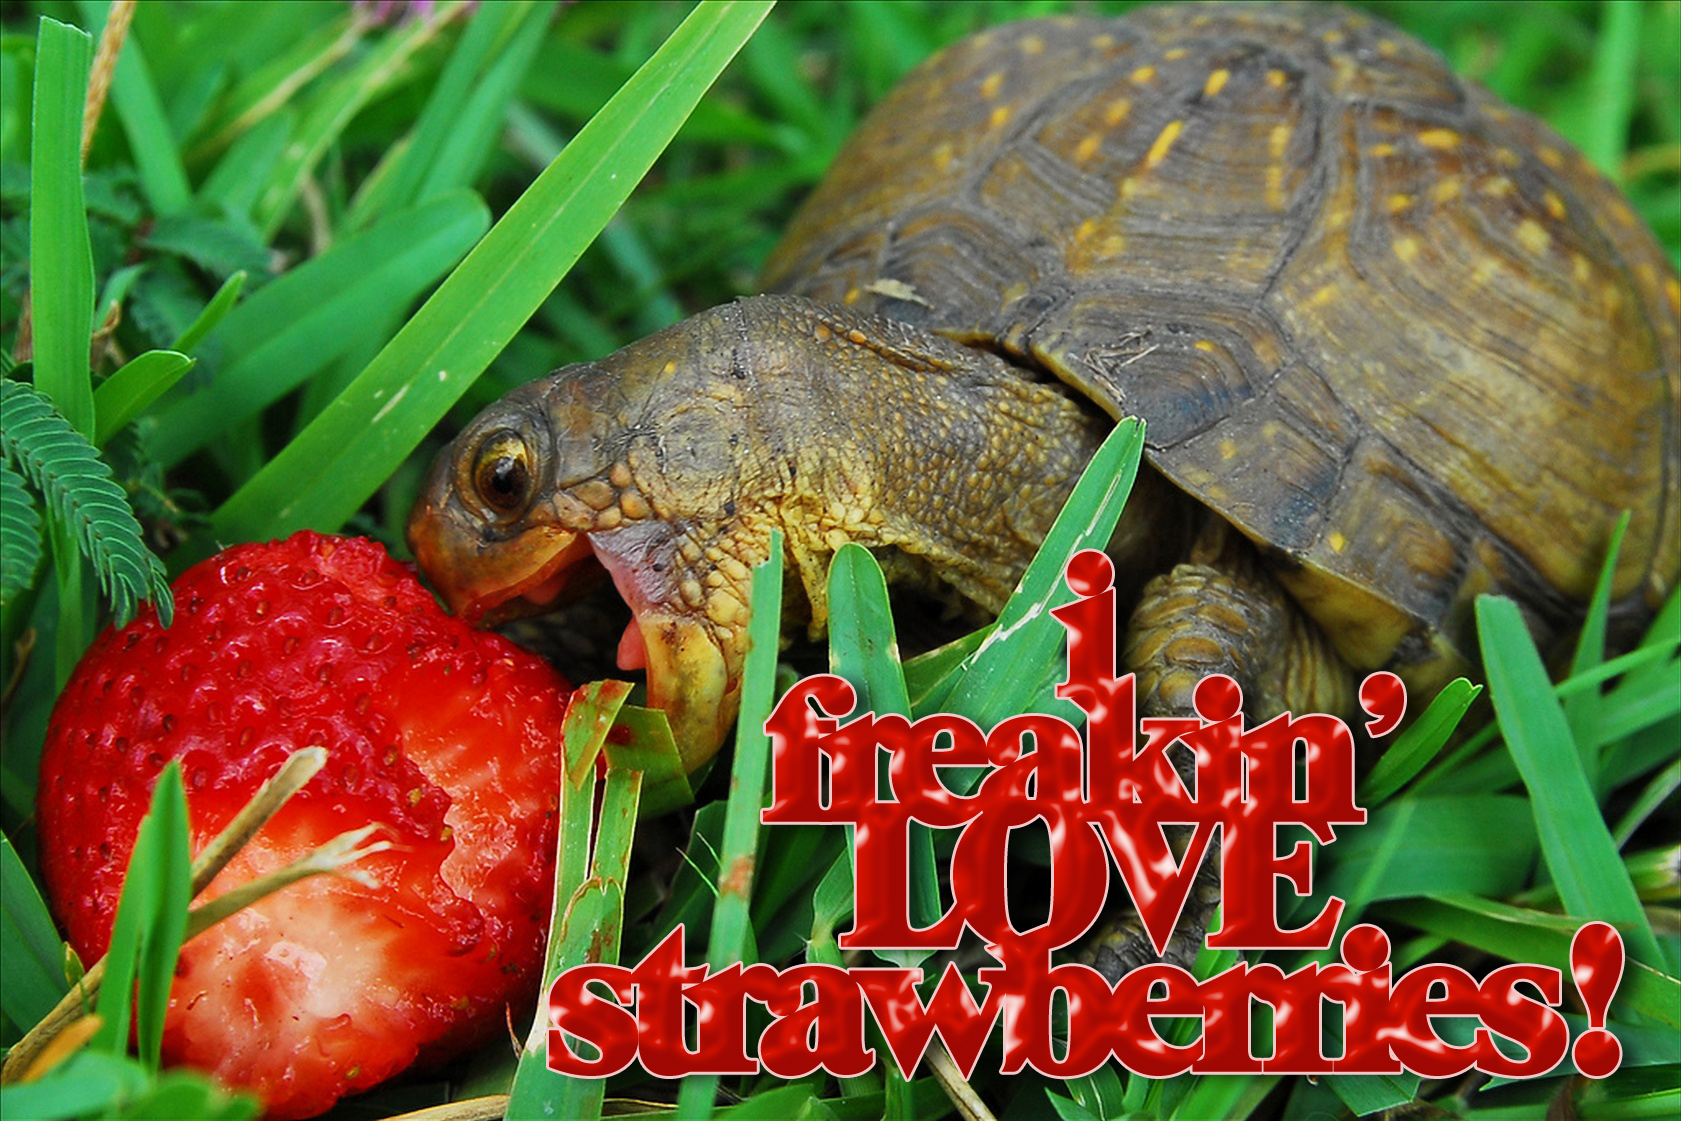 turtle-loves-strawberries.jpg